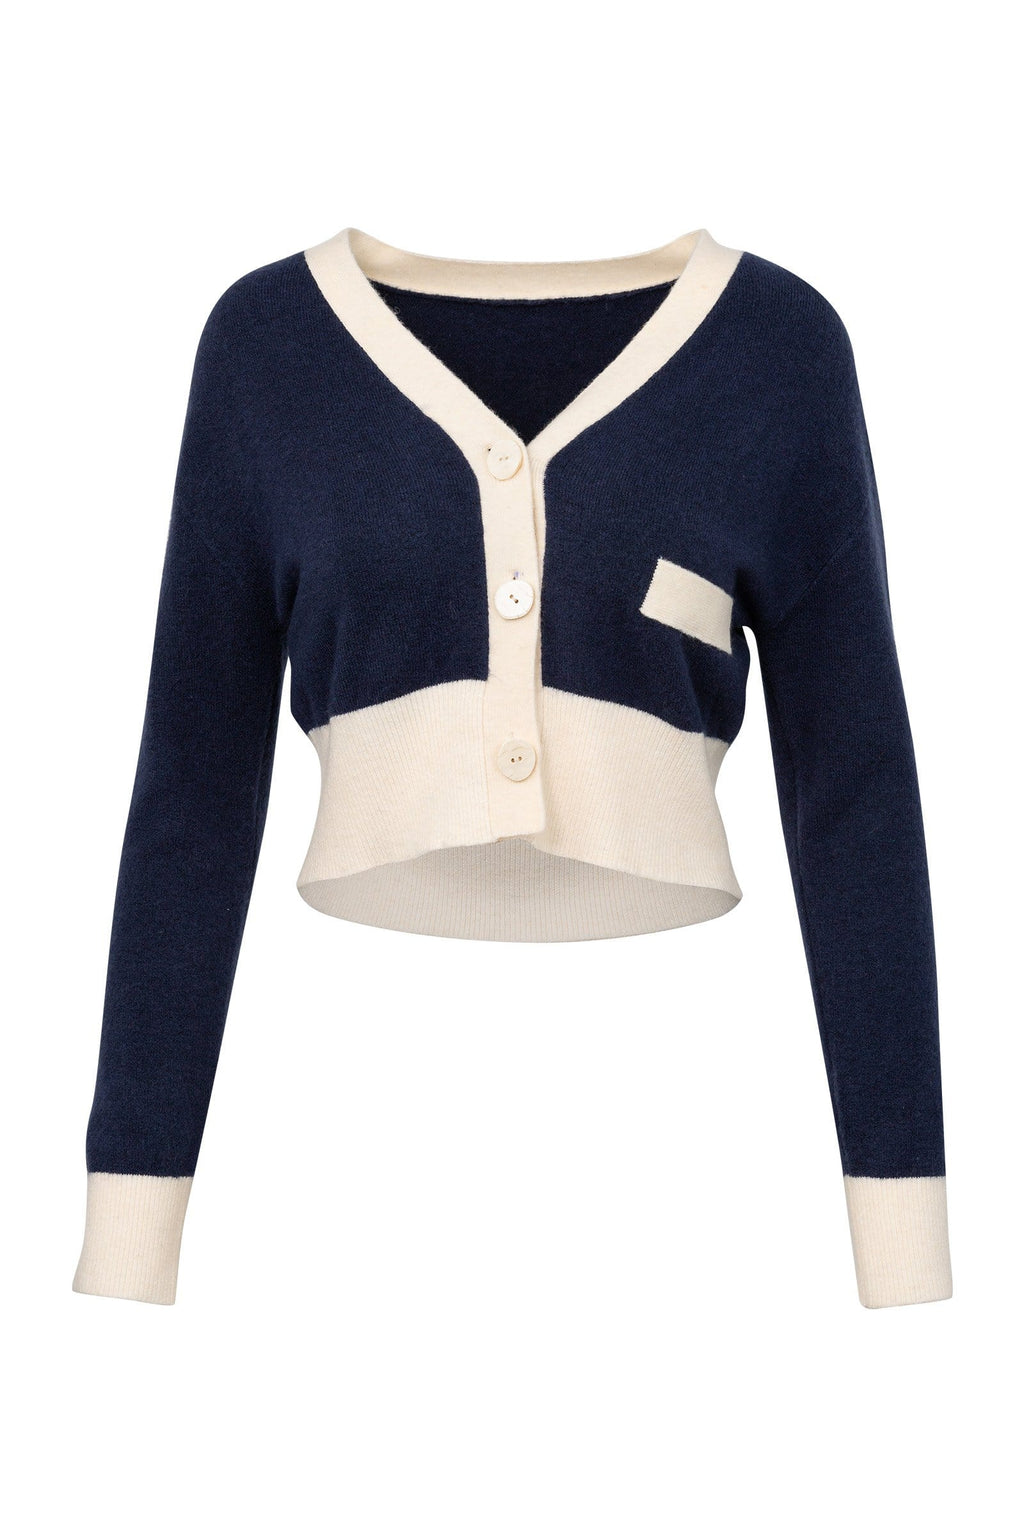 Piper Navy Blue Knit Cardigan for Women by J.ING